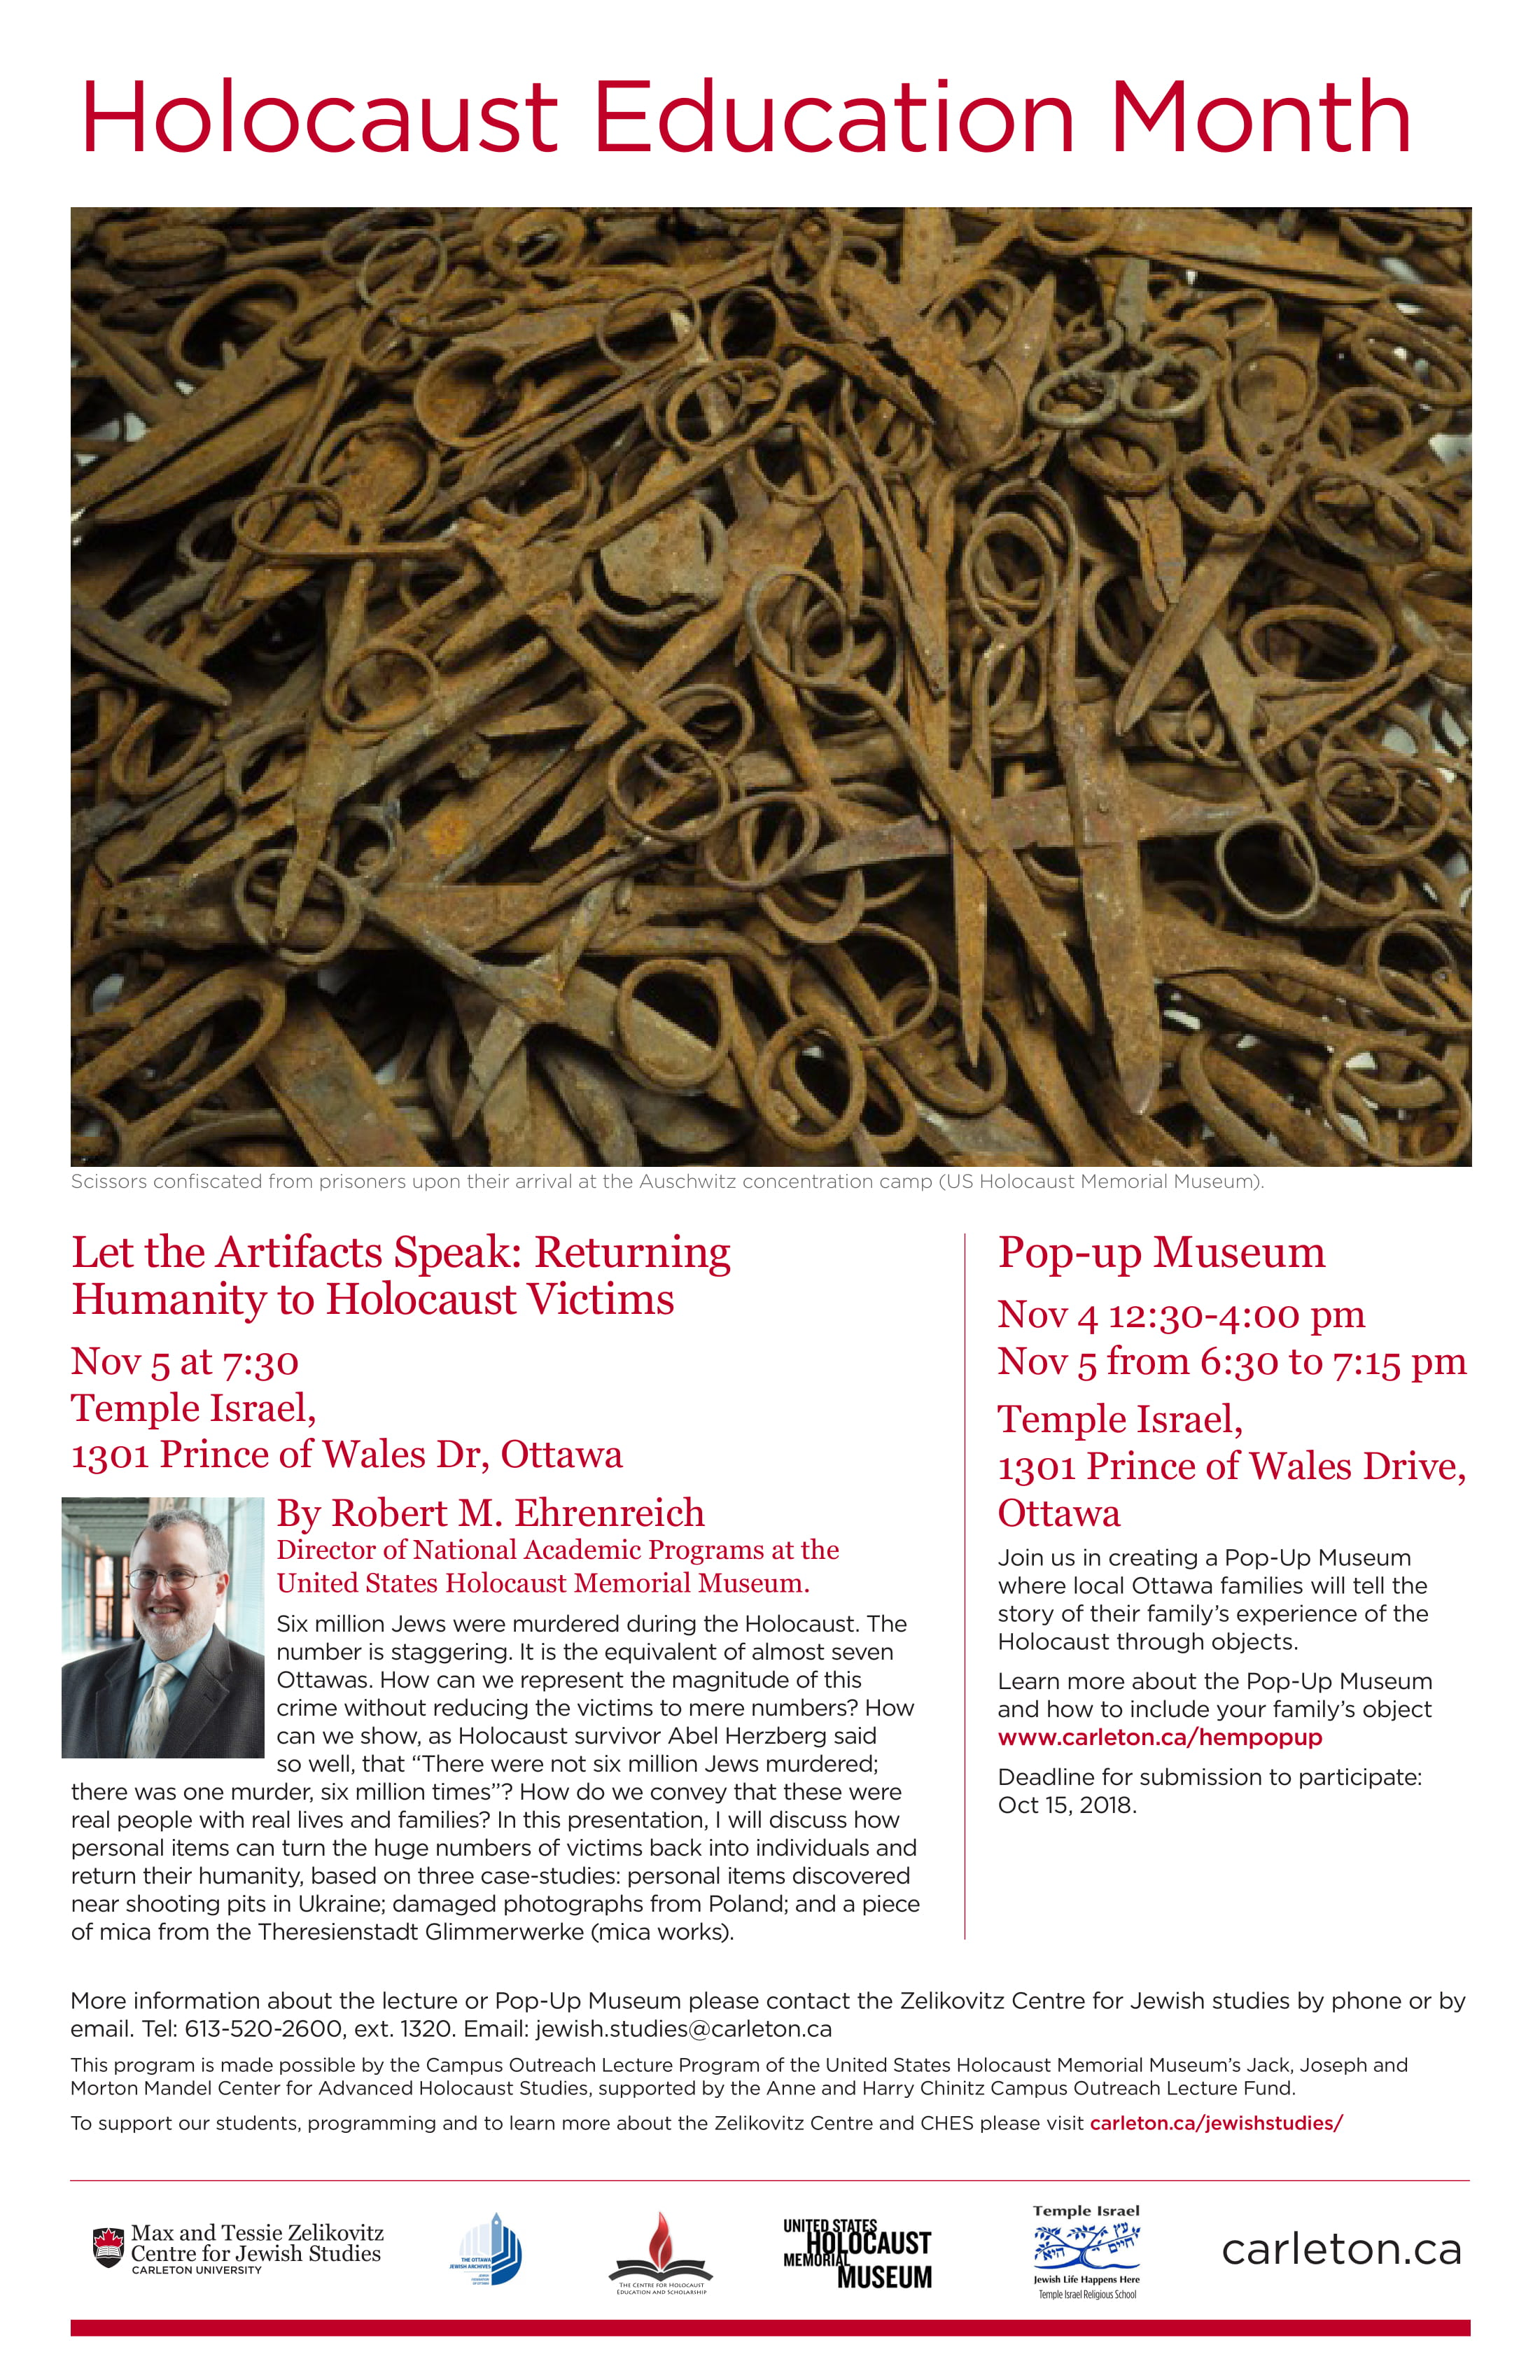 A poster of the Zelikovitz Centre's Holocaust Education Month event on November 7, 2018 with Dr. Ehrenreich and Pop-up museum